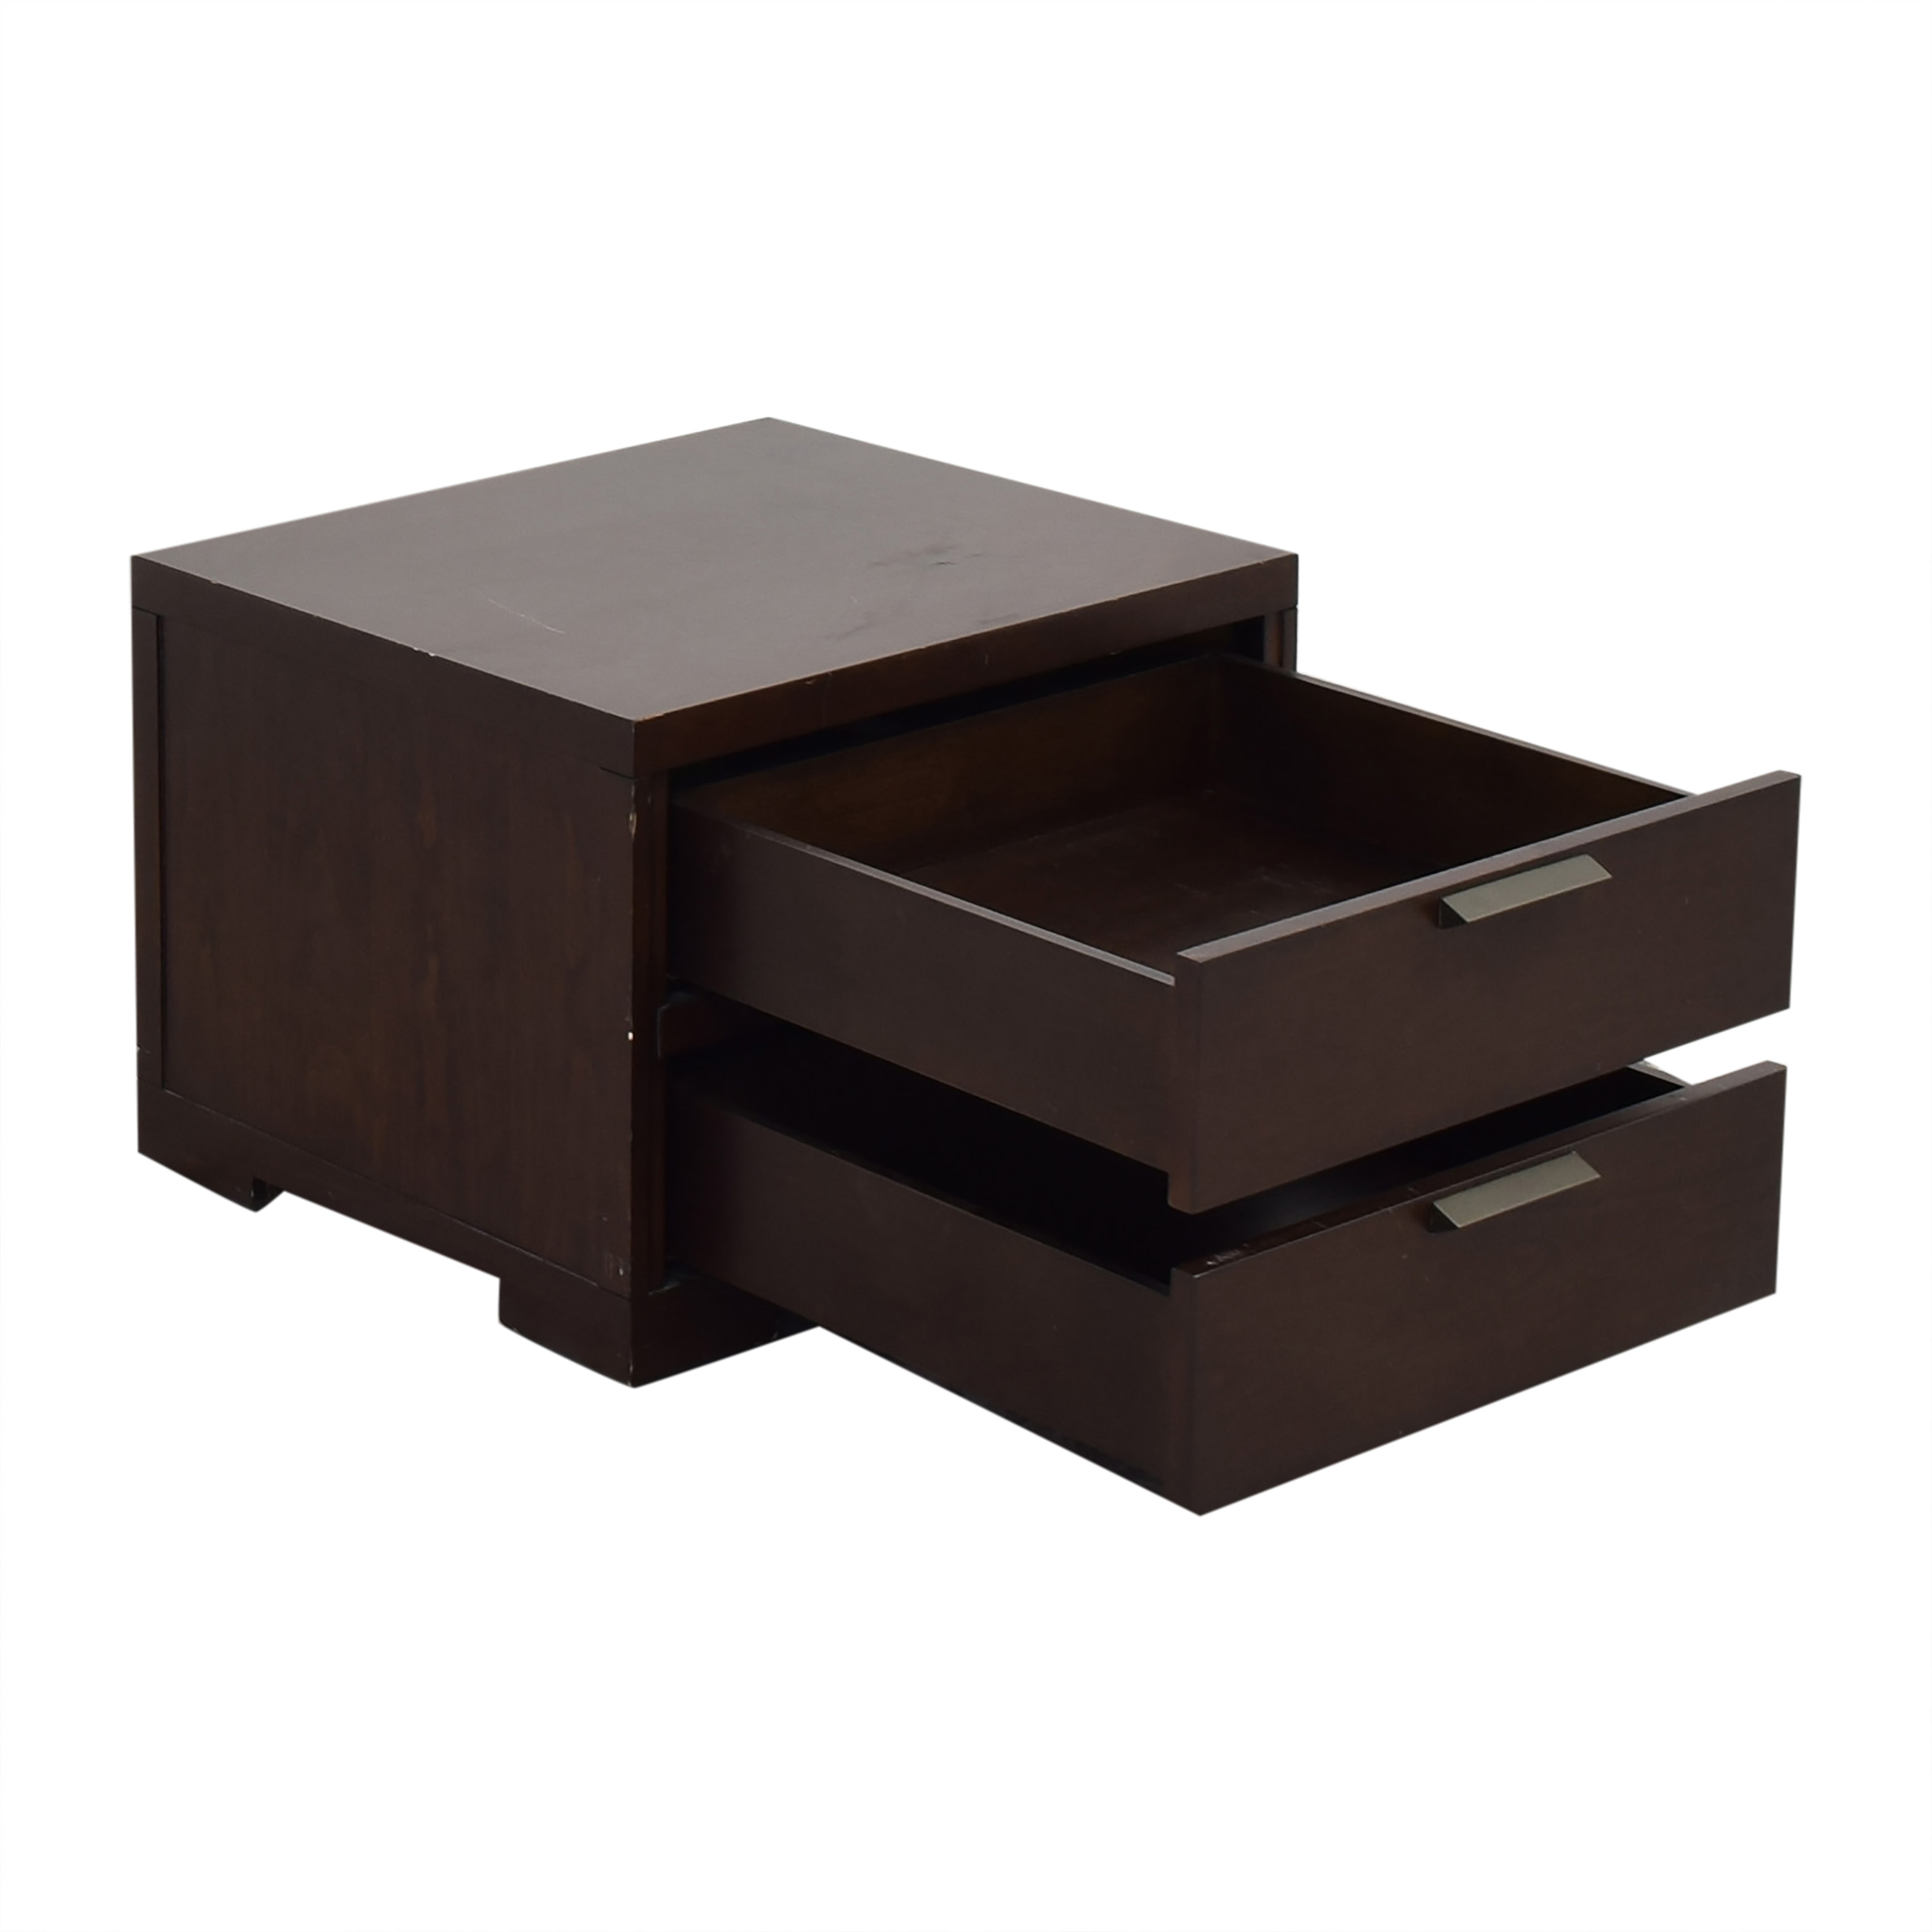 Crate & Barrel Crate & Barrel Asher 2-Drawer Nightstand for sale